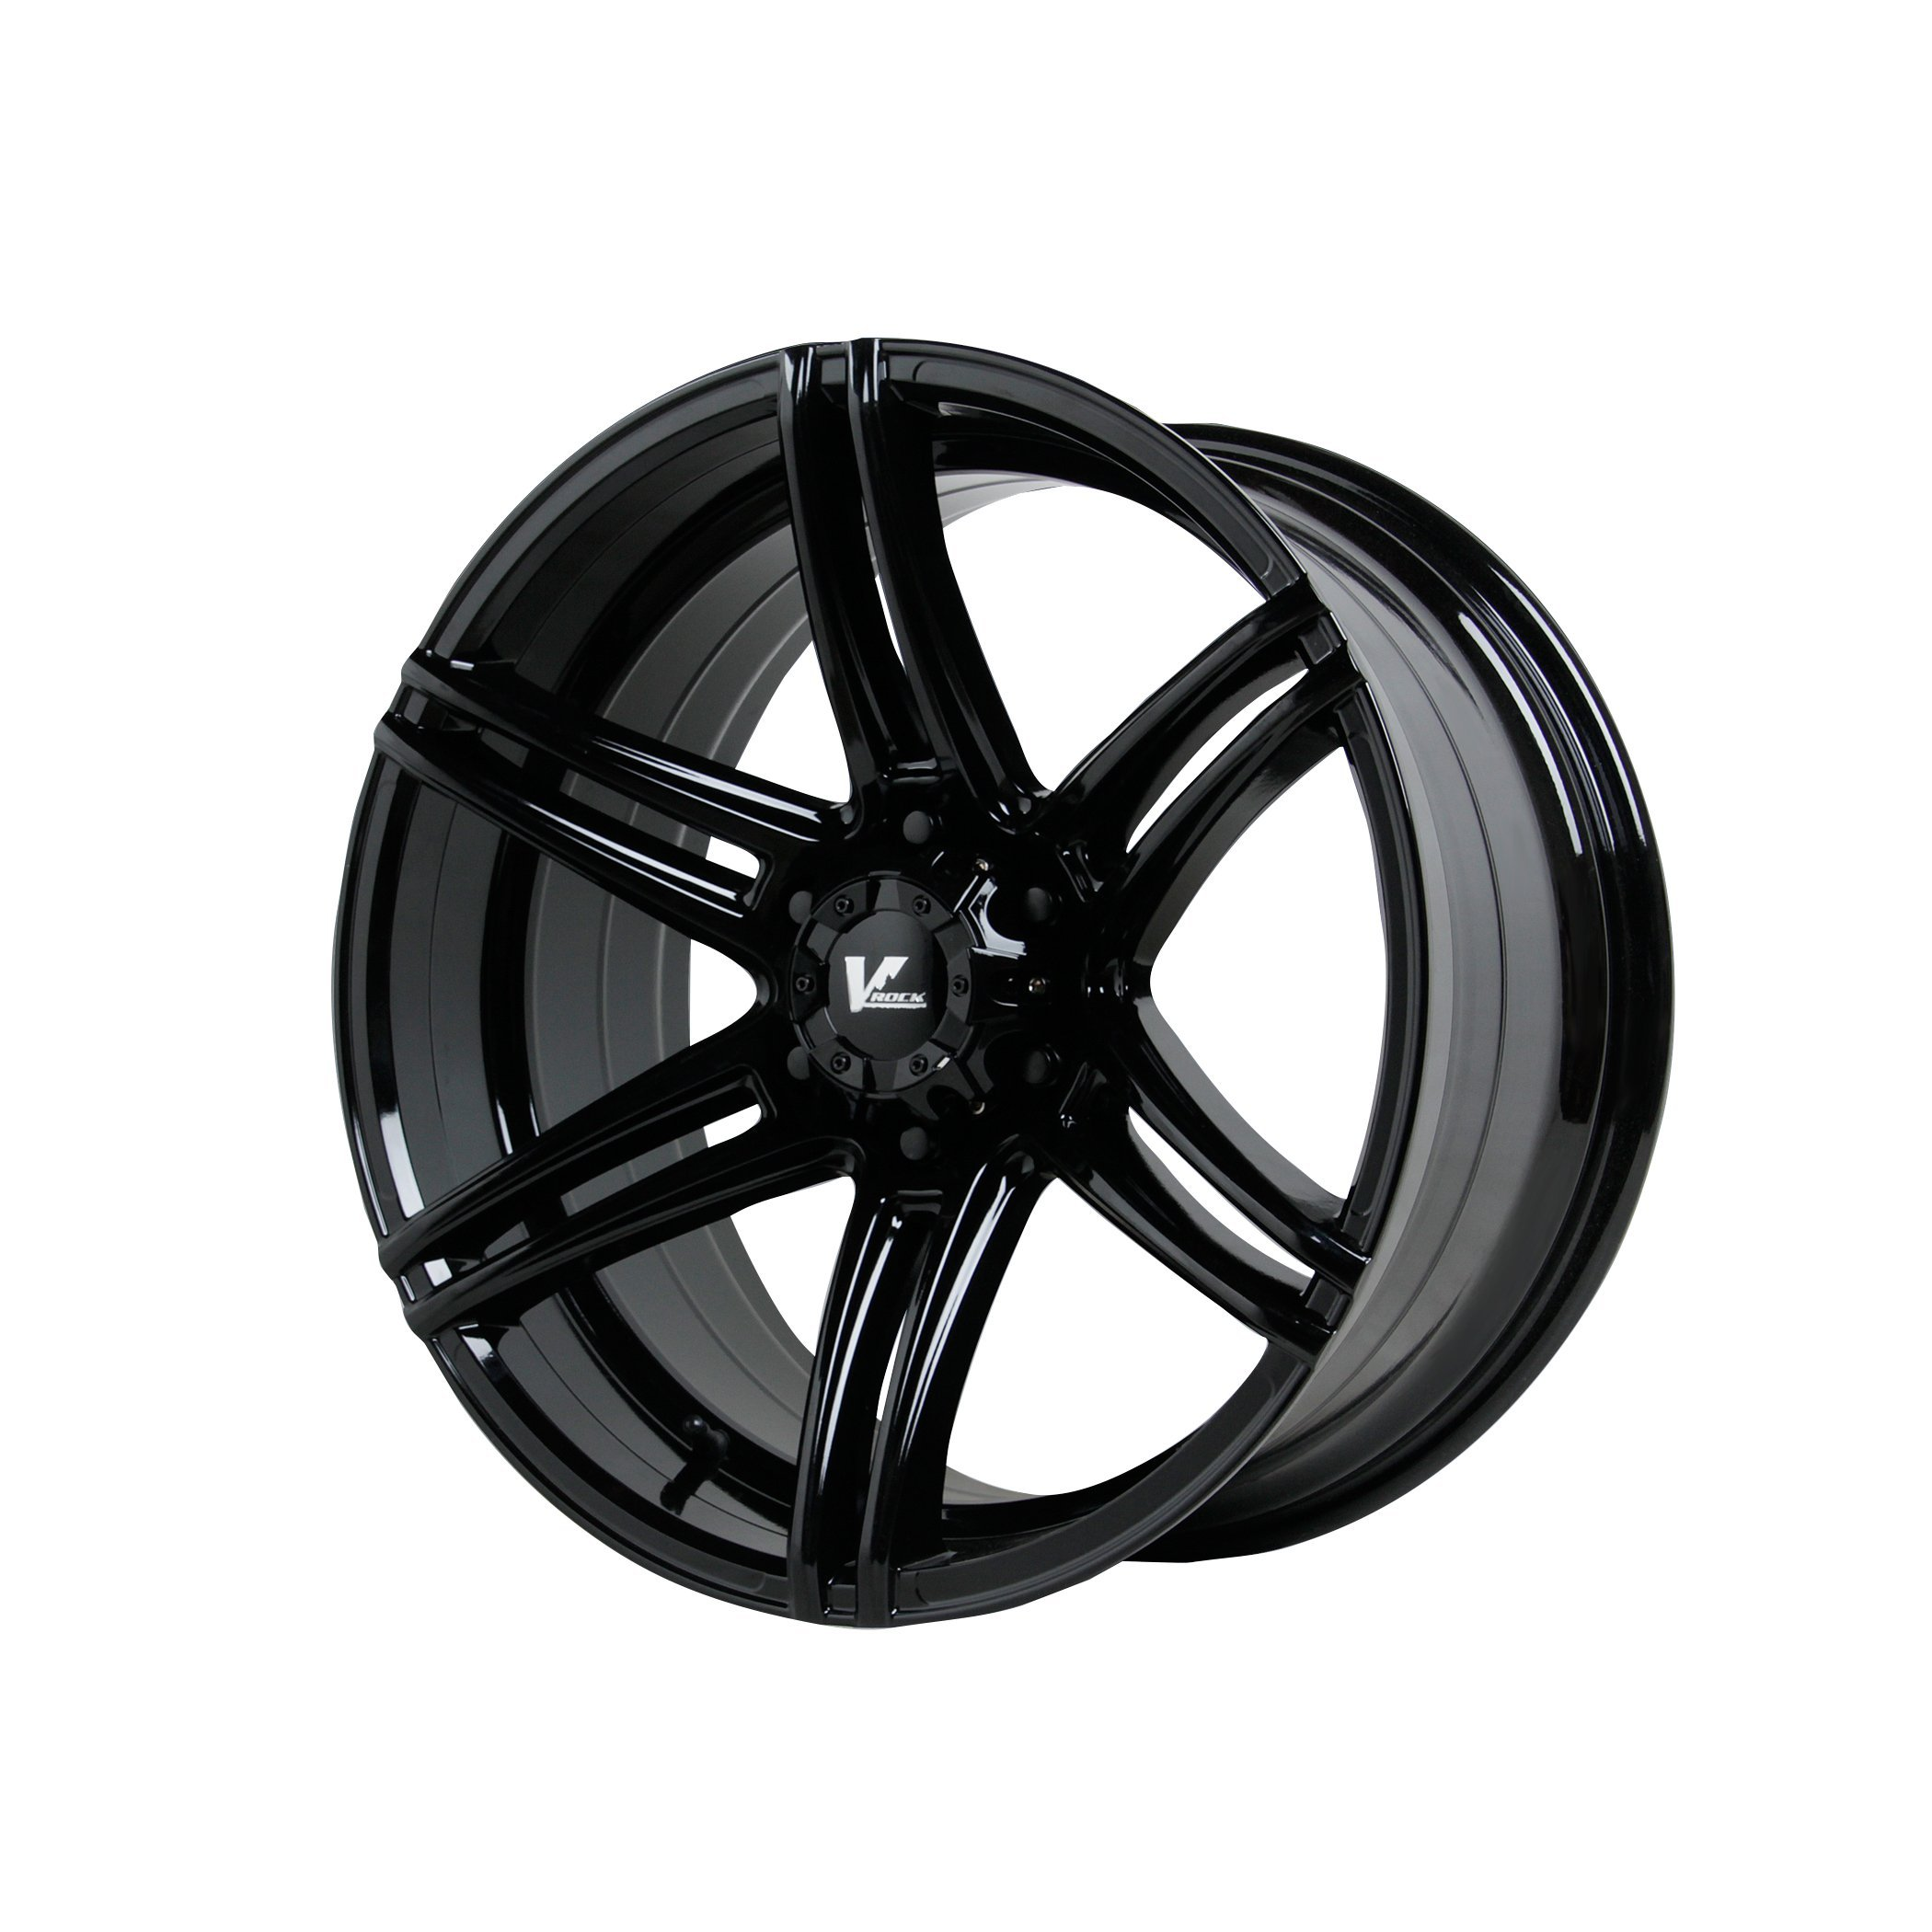 V-Rock VR9 Terrain Matte Black Wheel (17x9.5''/5x5'')